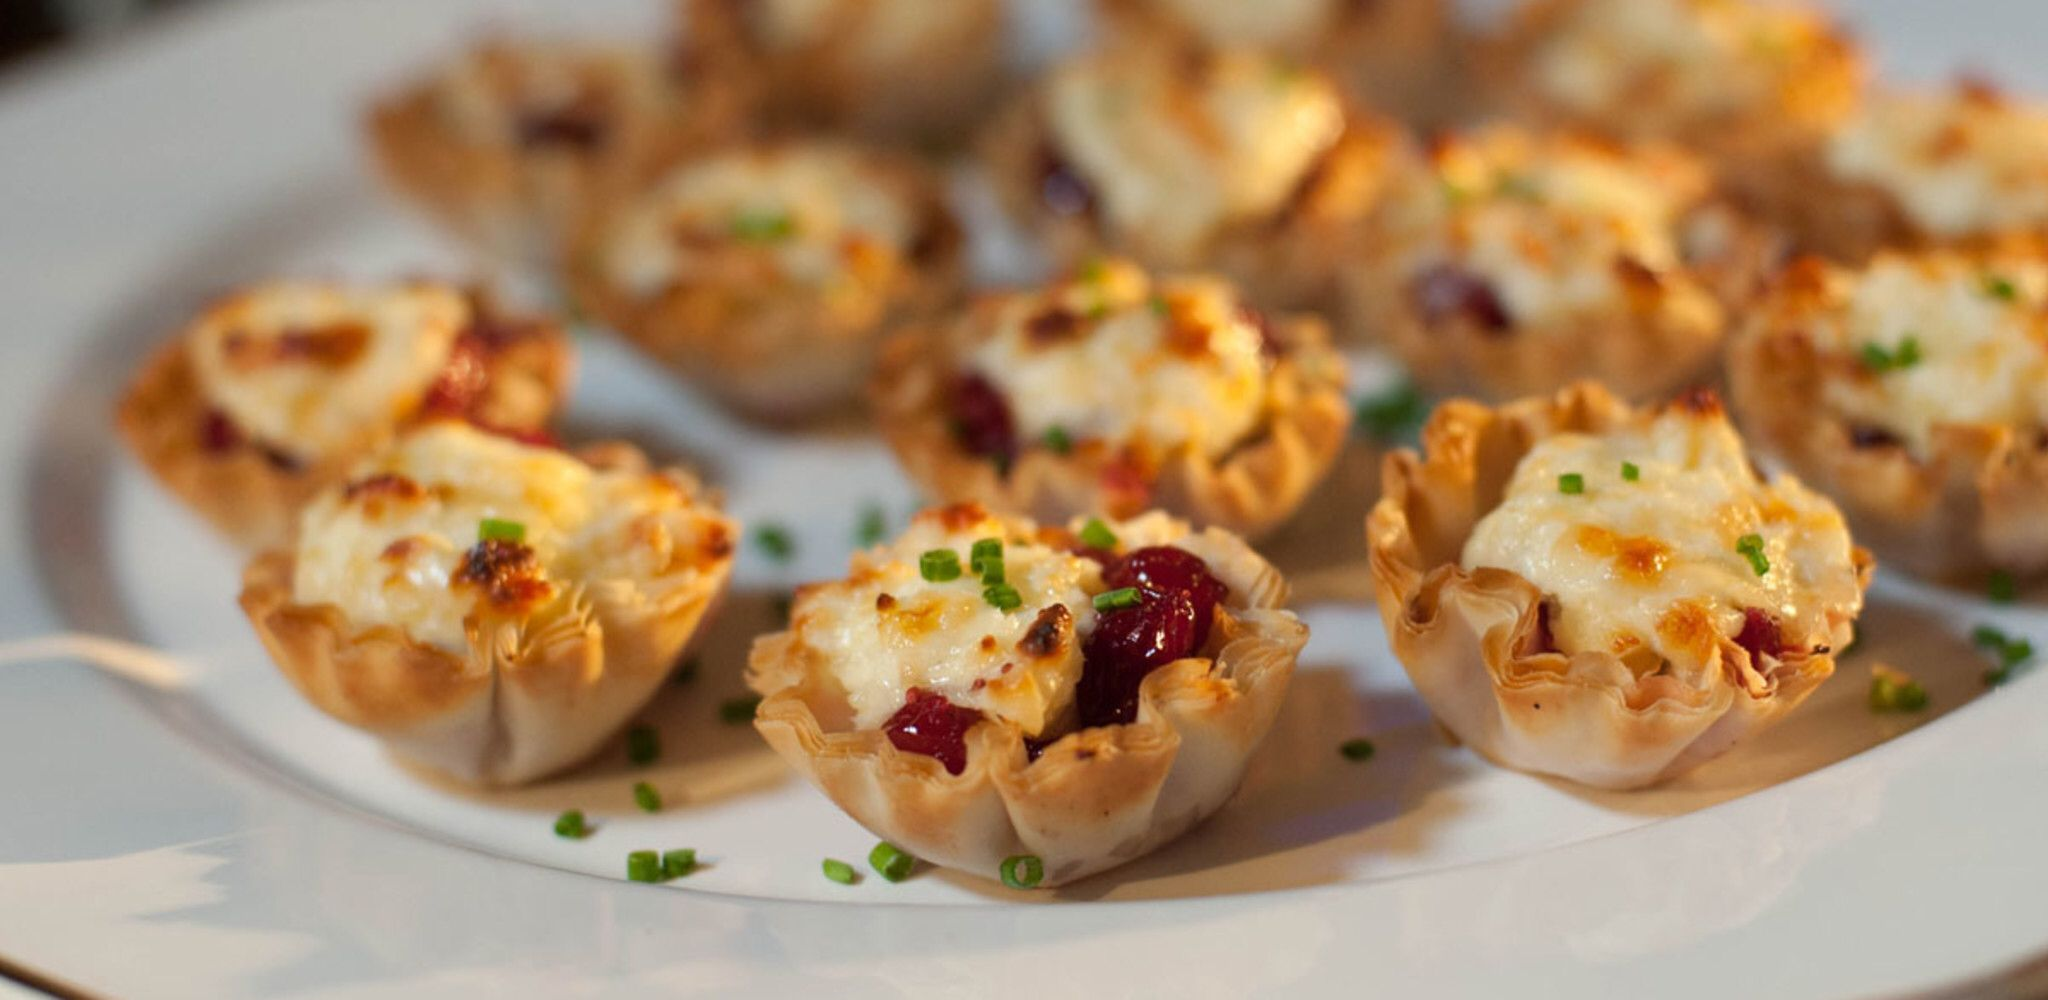 Toasted Gruyere And Cranberry Cups Recipe Food Network Recipes Easy Holiday Recipes Appetizer Bites